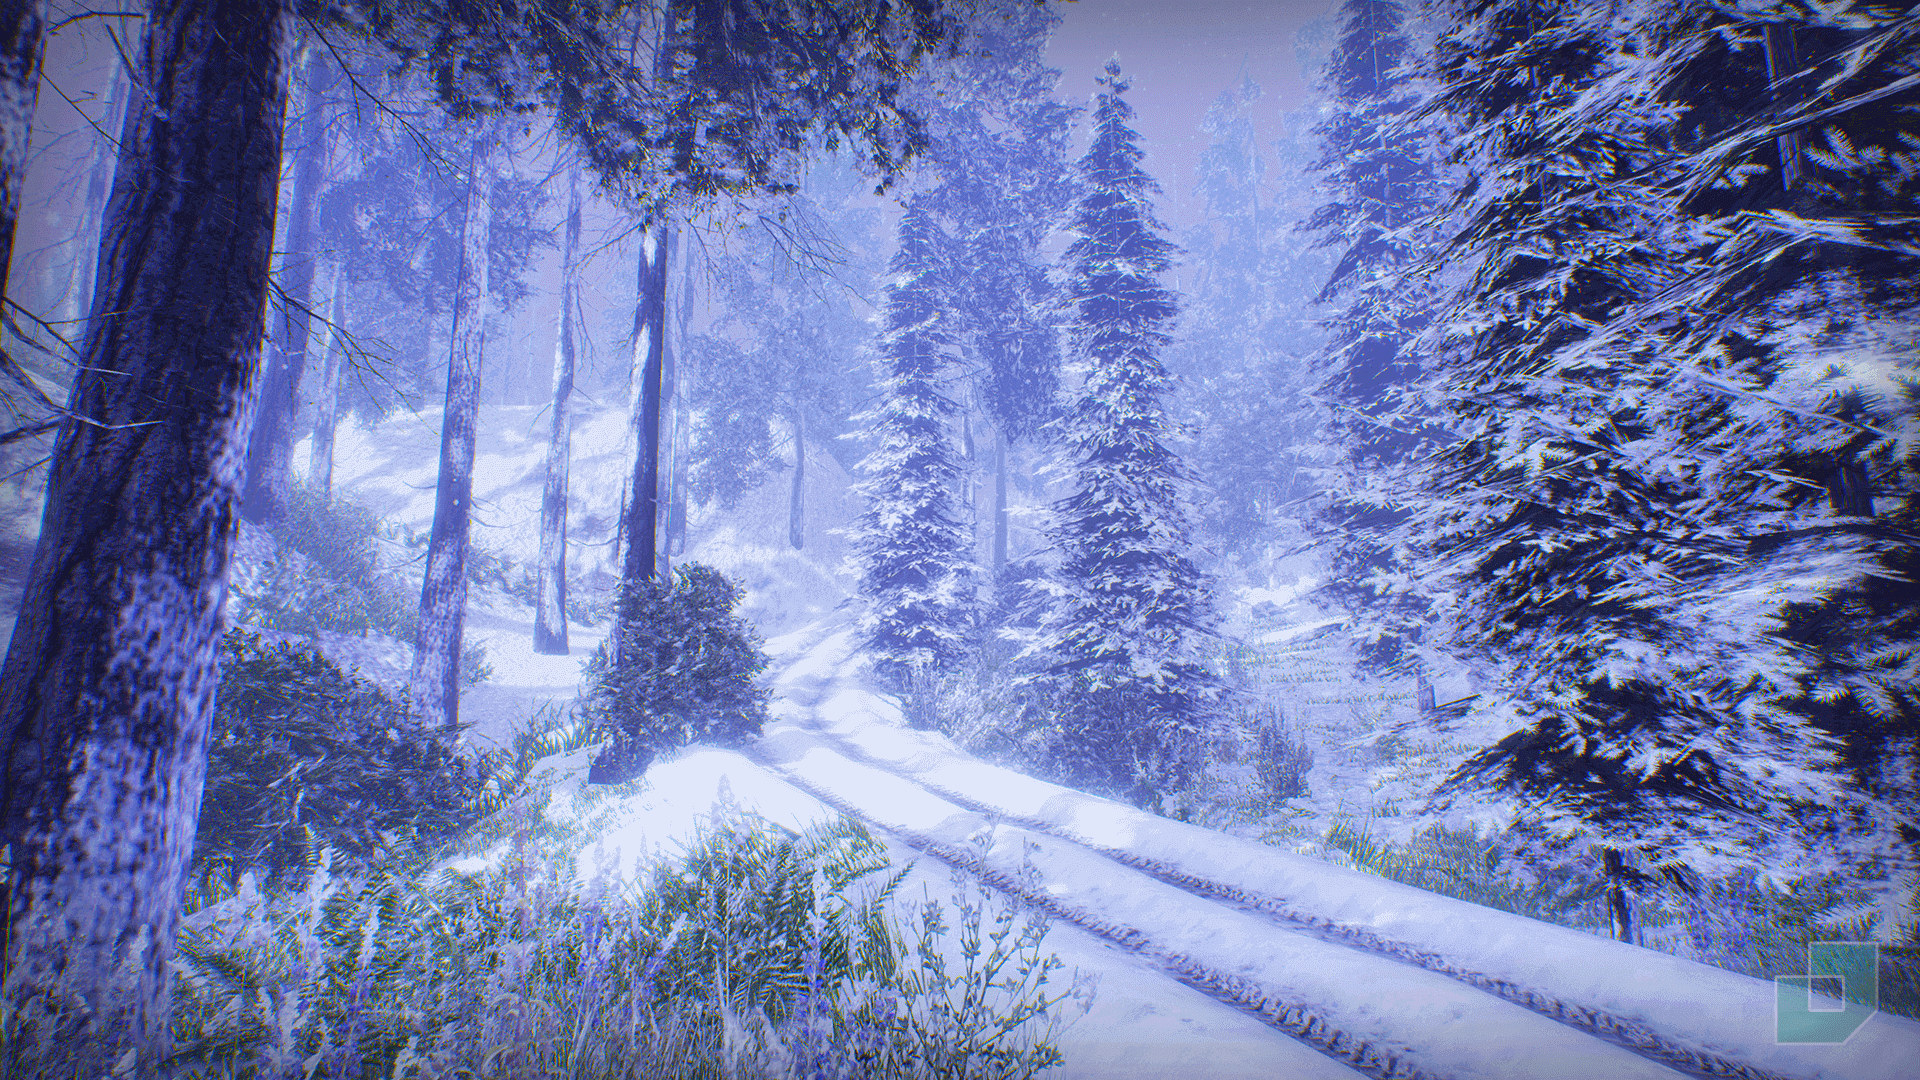 Low Poly Snow Forest by Dokyo in Environments - UE4 ...